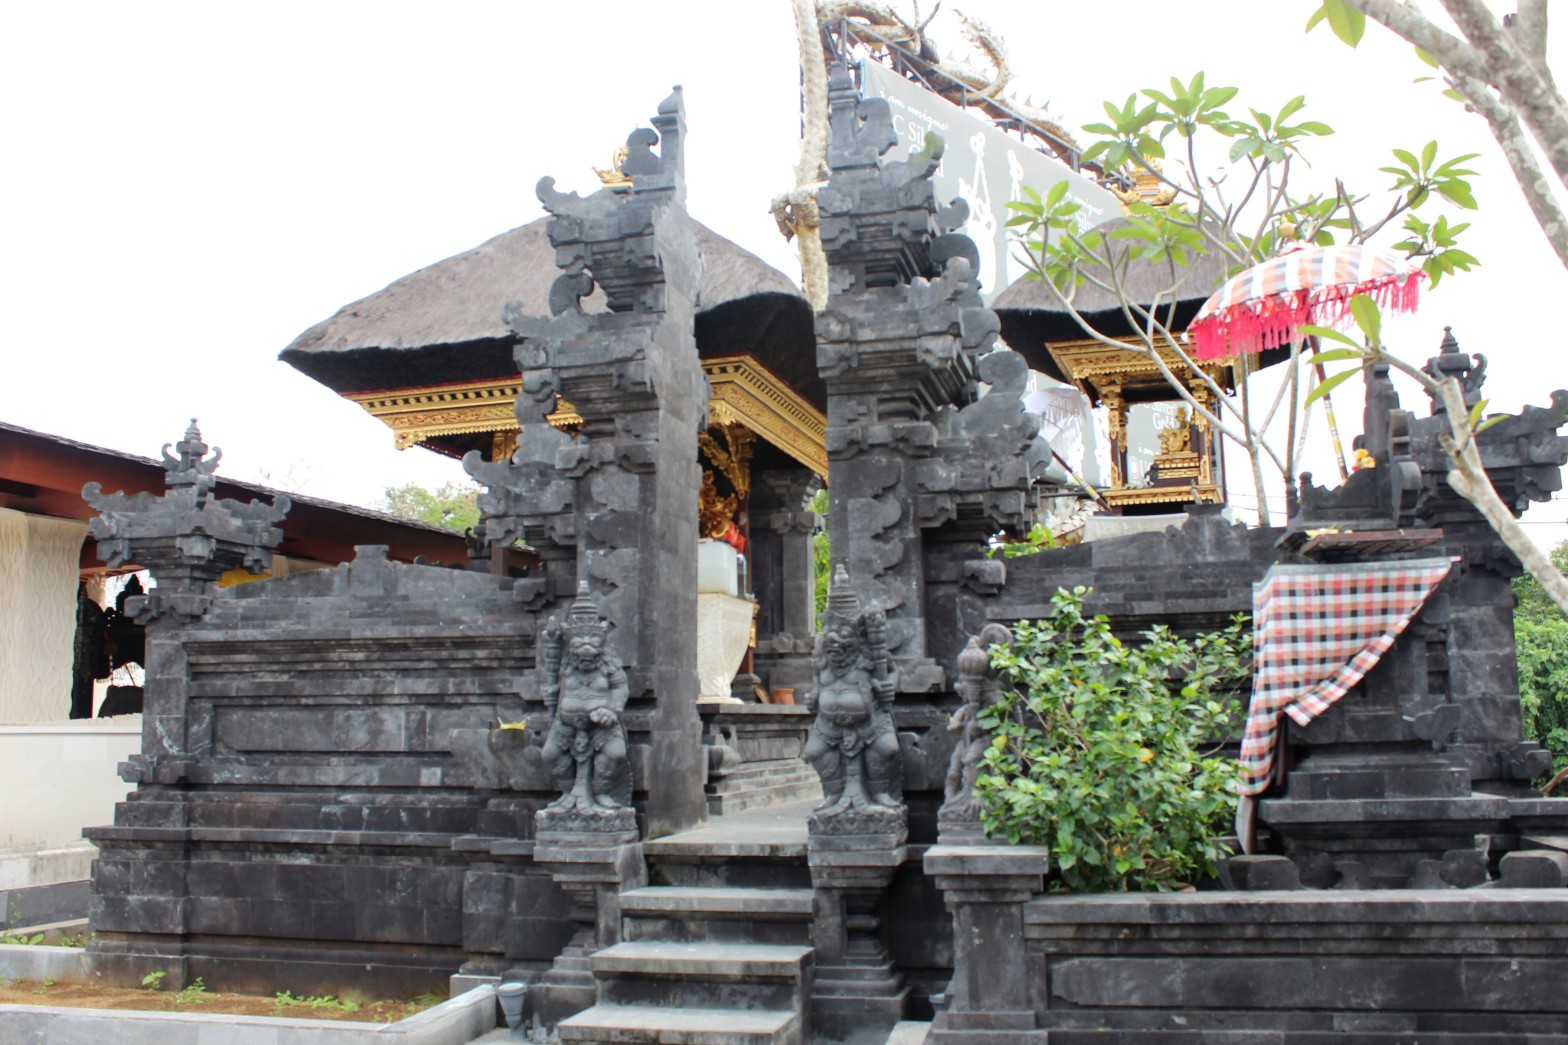 Bali, The Island of a Thousand Temples